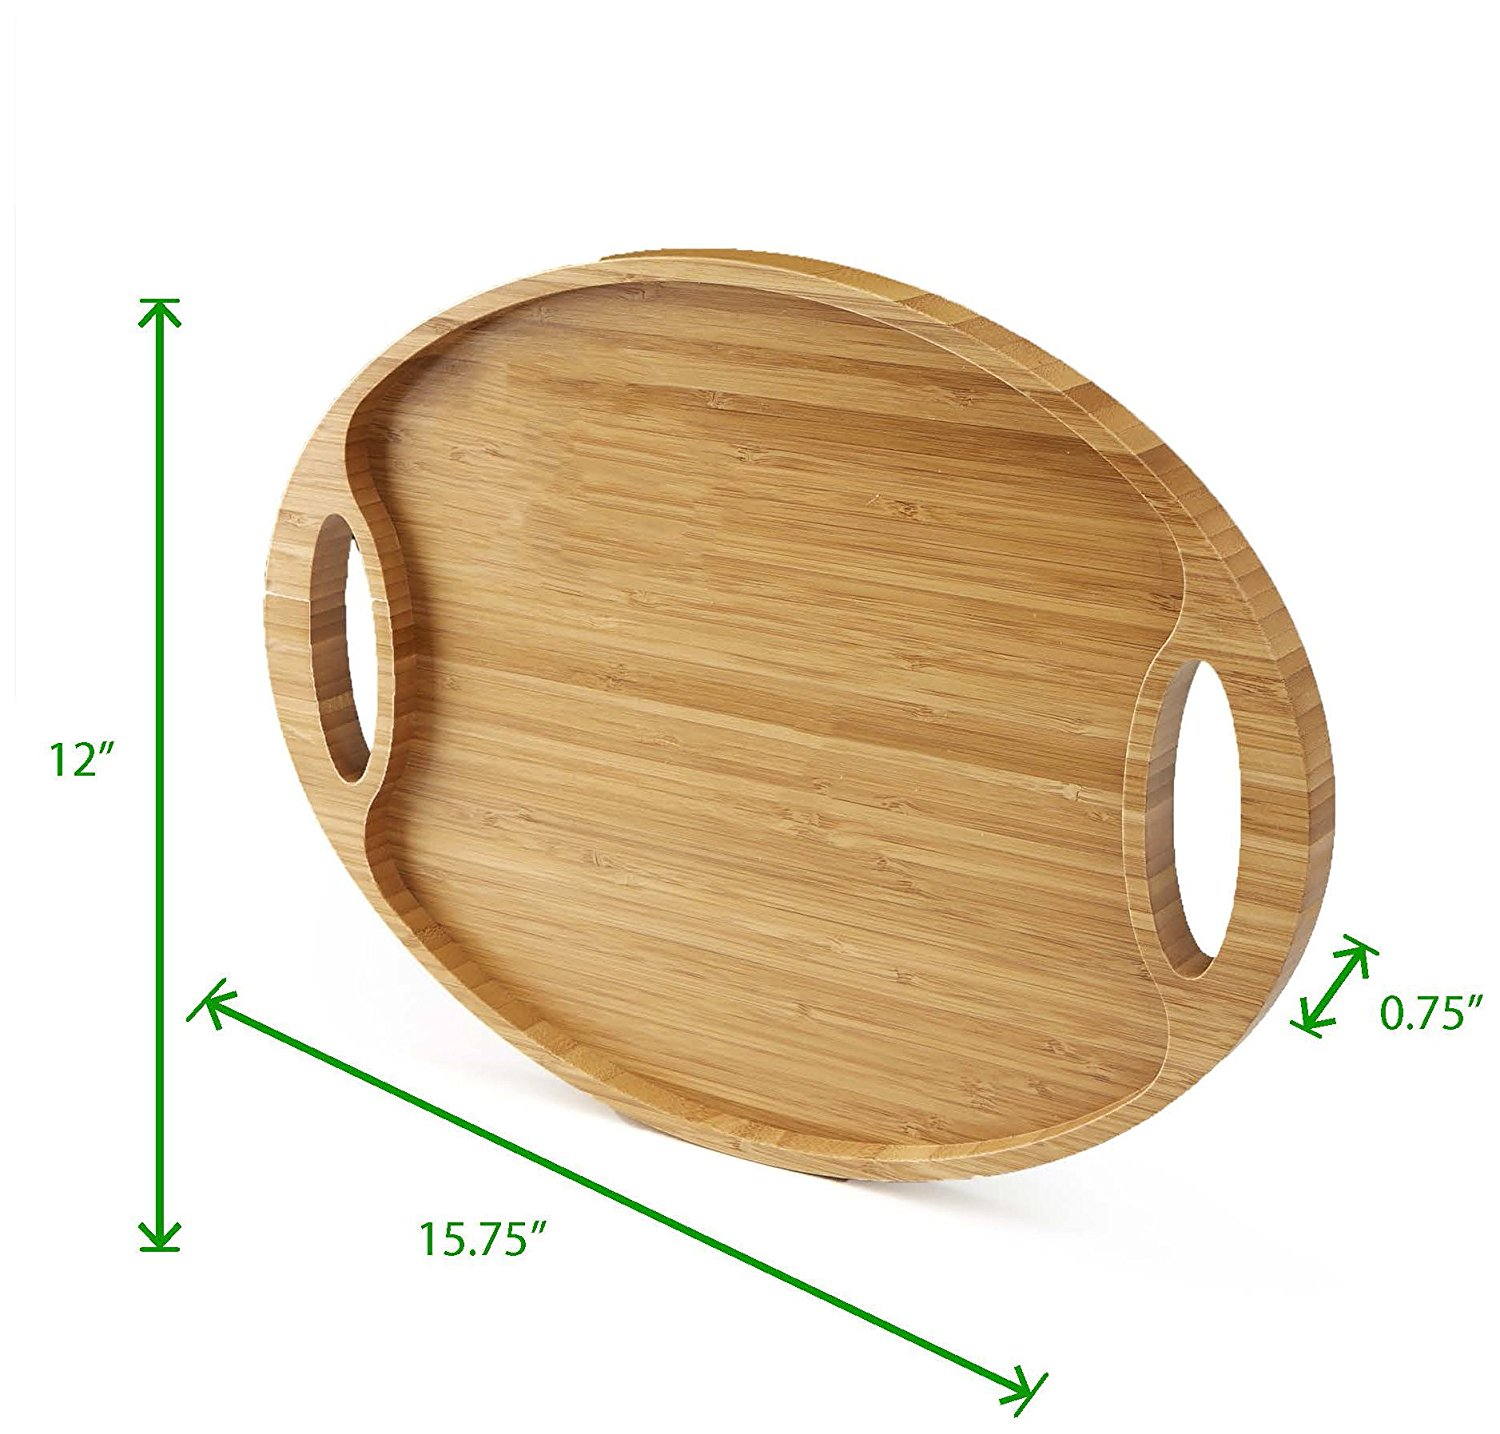 Promotional Products For Bamboo Tray Serving With Two Stylish Holder